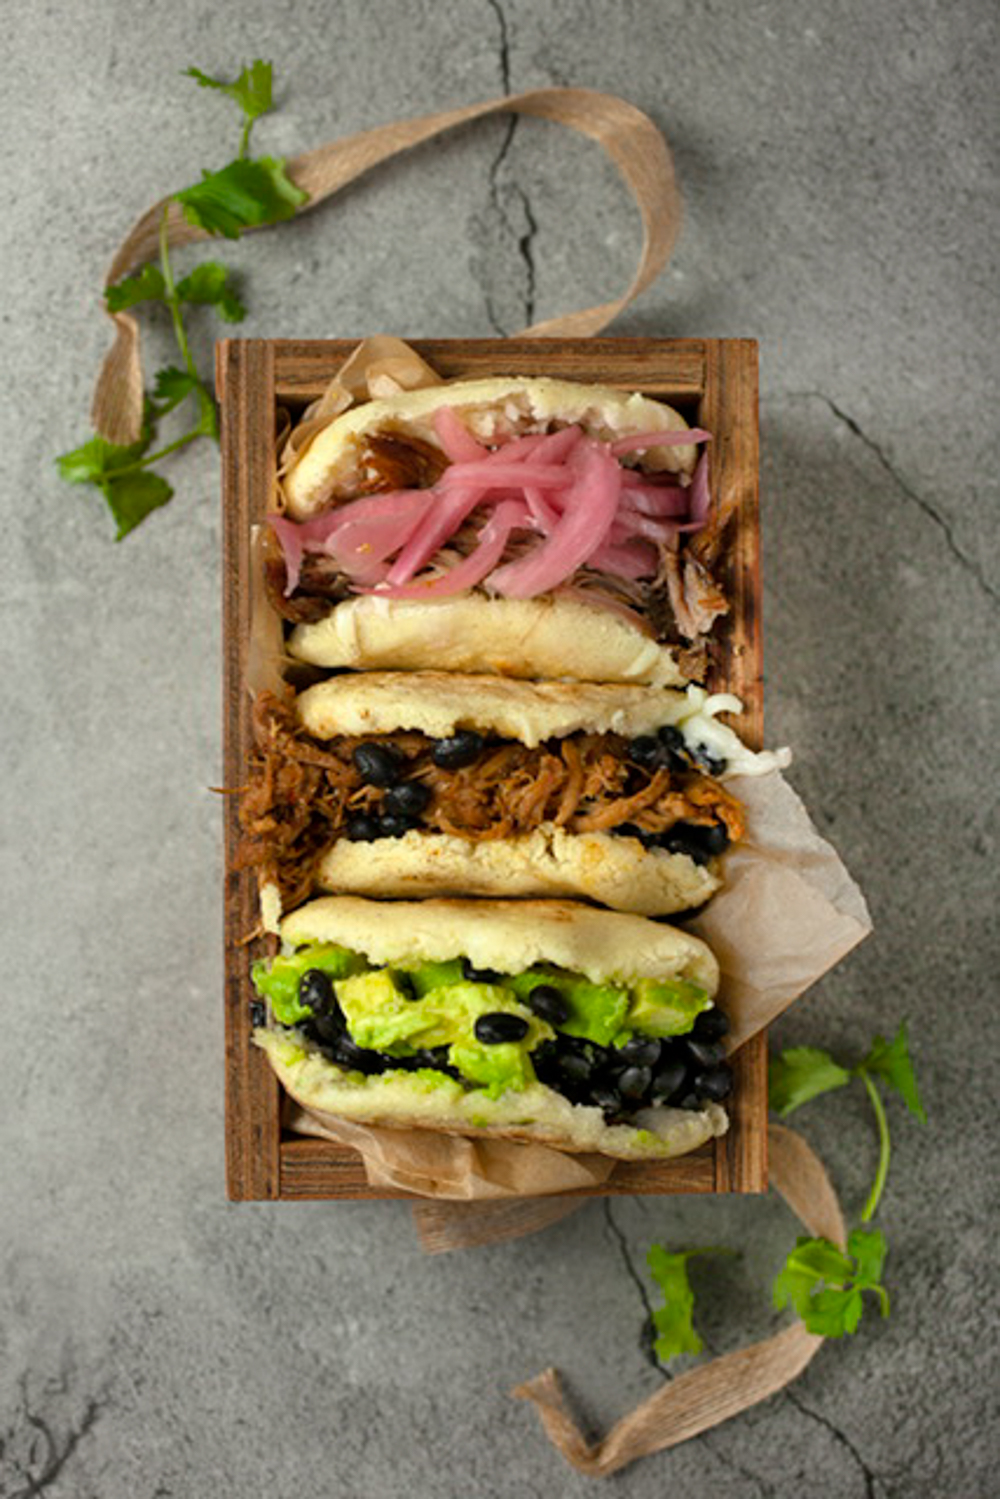 A selection of arepas